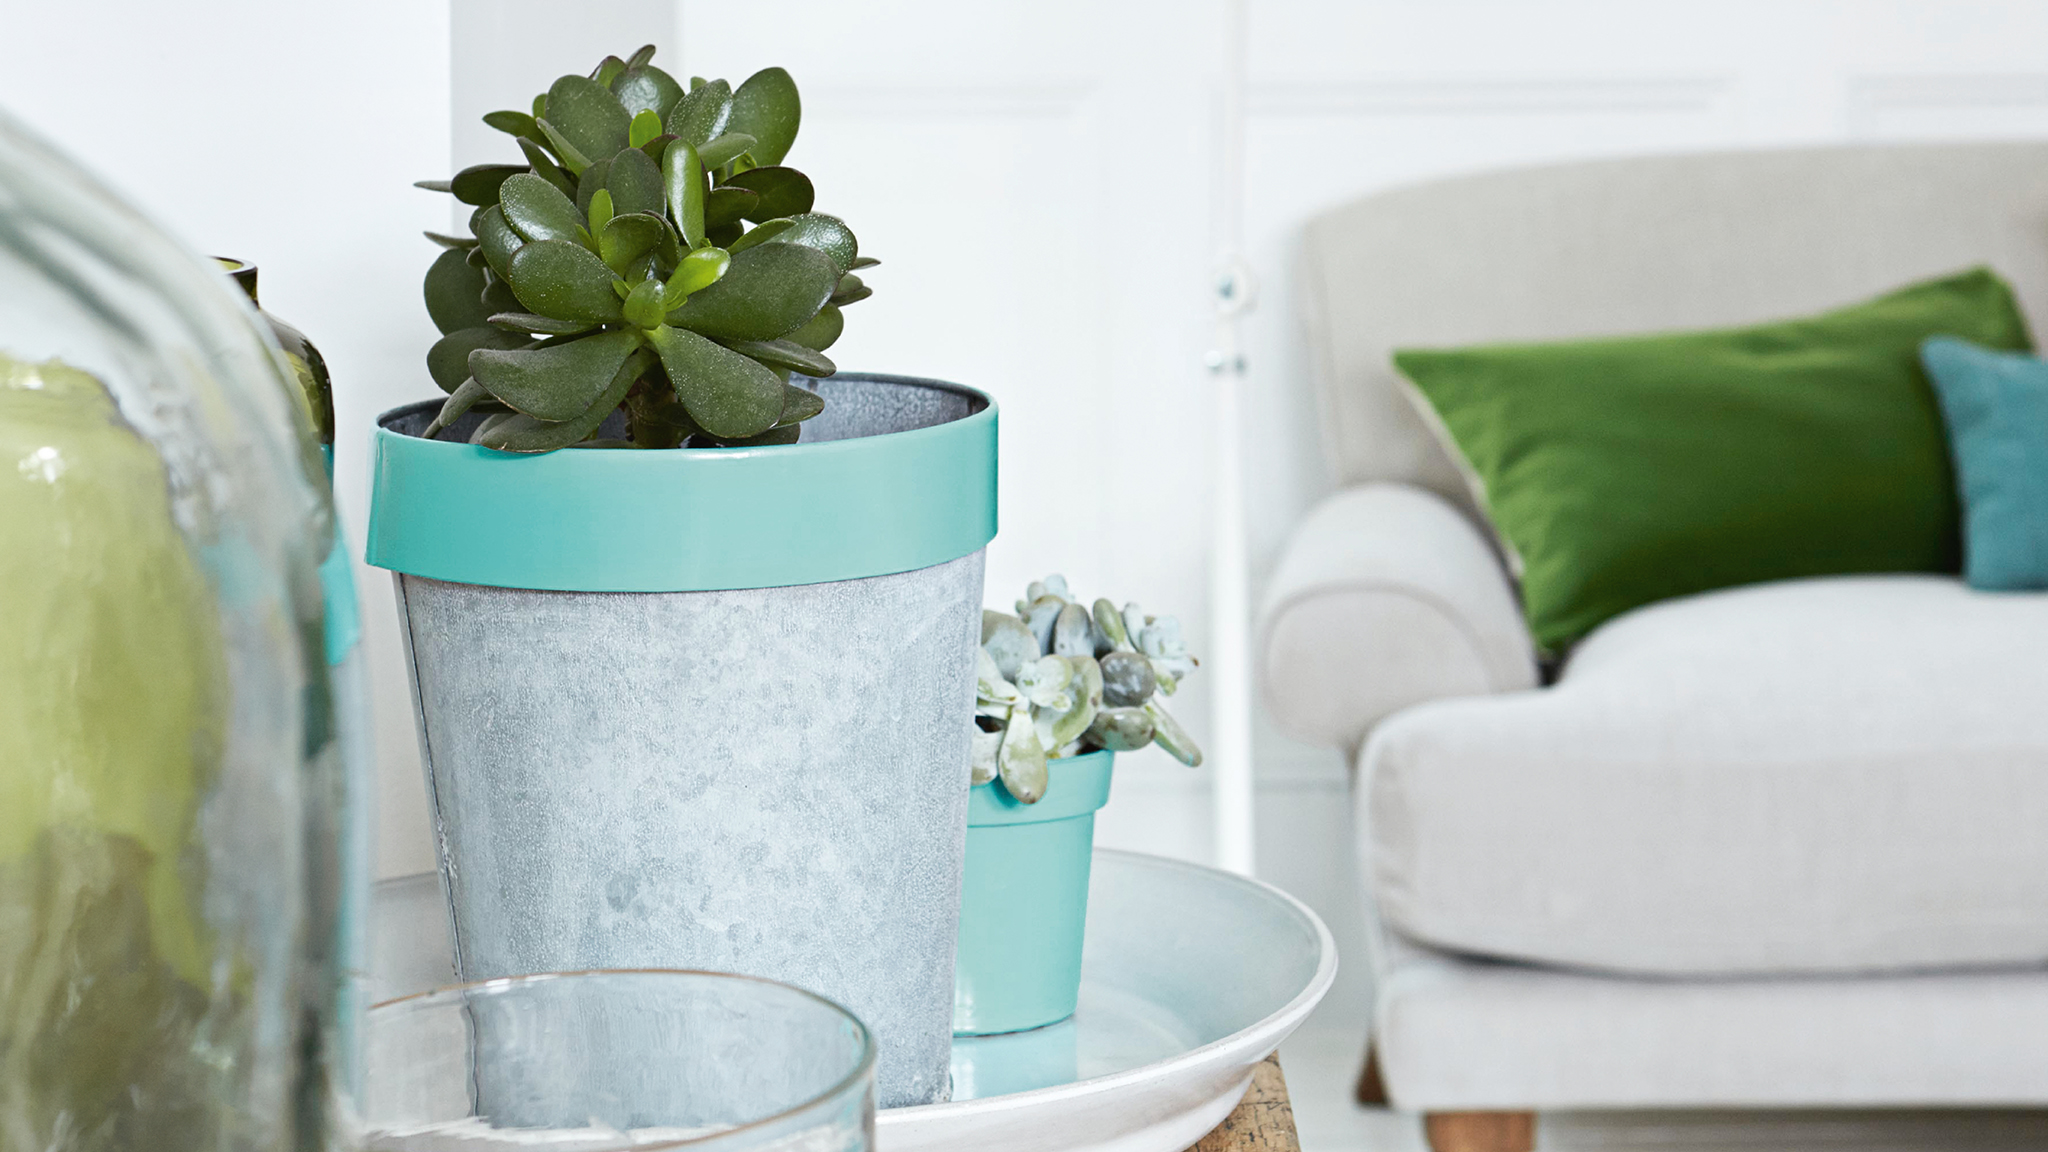 Take ordinary plant pots and vases and give them a lick of paint to make them stand out.